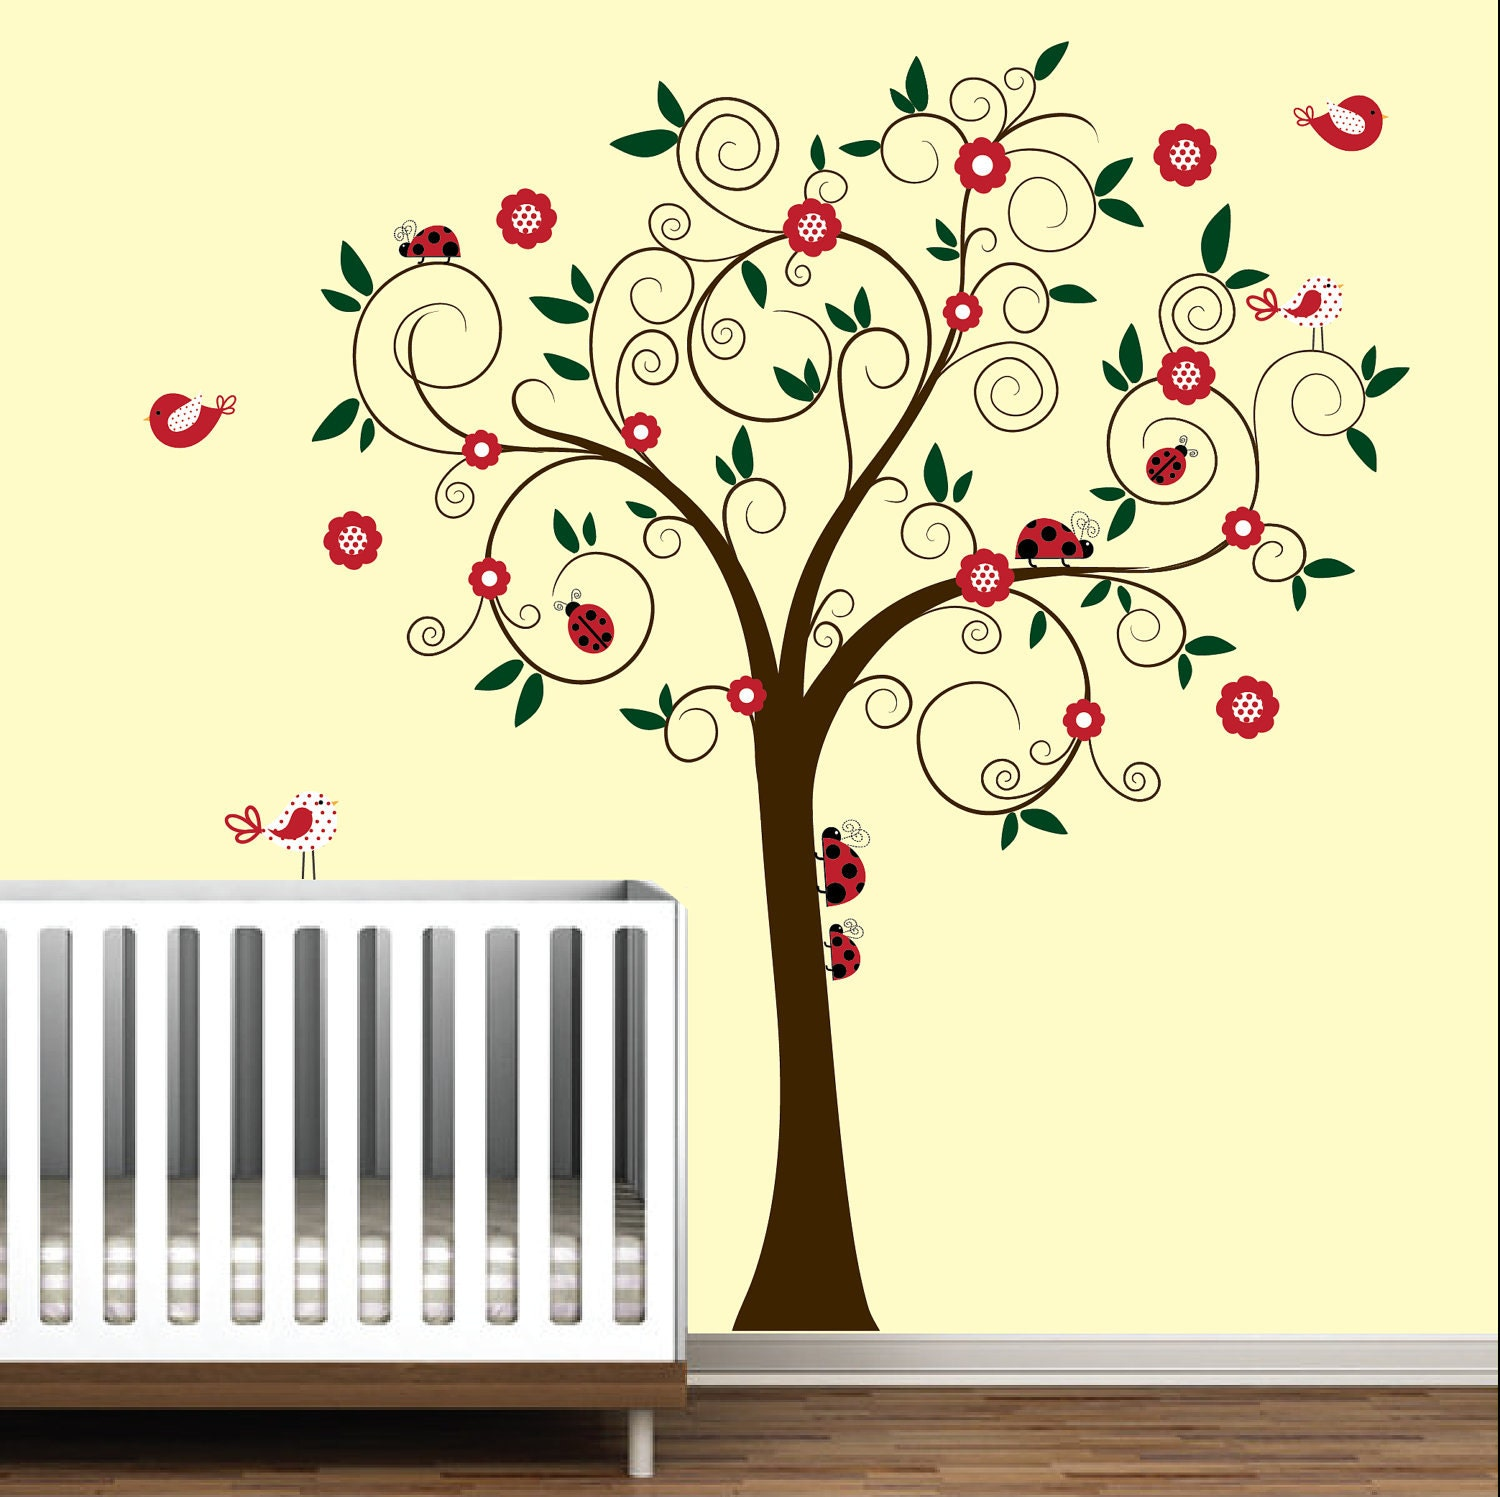 Baby nursery wall decal wall sticker tree decals ladybugs tree for Baby nursery tree mural